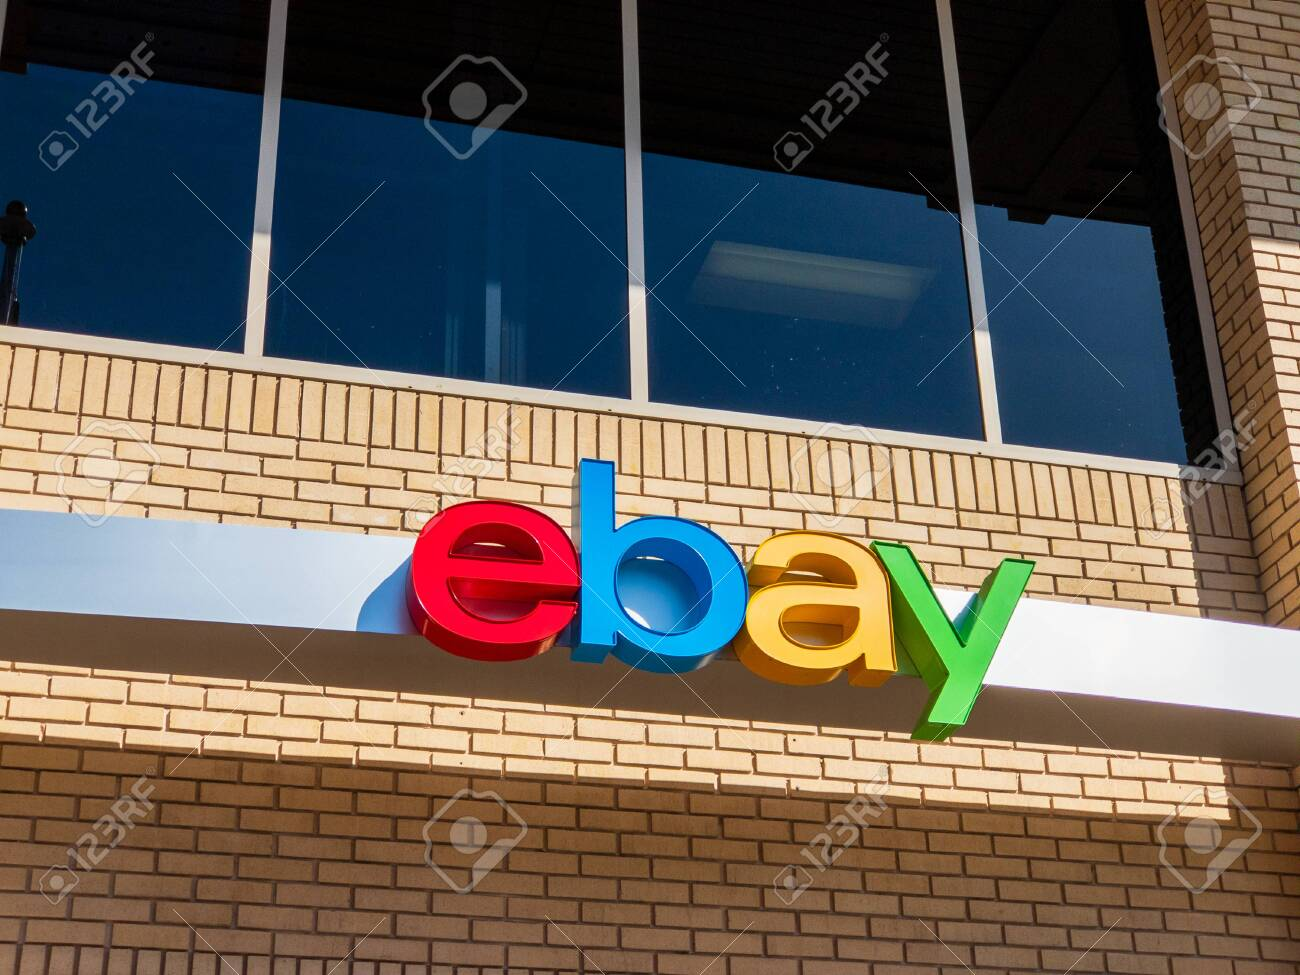 San Jose Usa September 10 2018 Ebay Outdoor Logo At Company Stock Photo Picture And Royalty Free Image Image 138851147